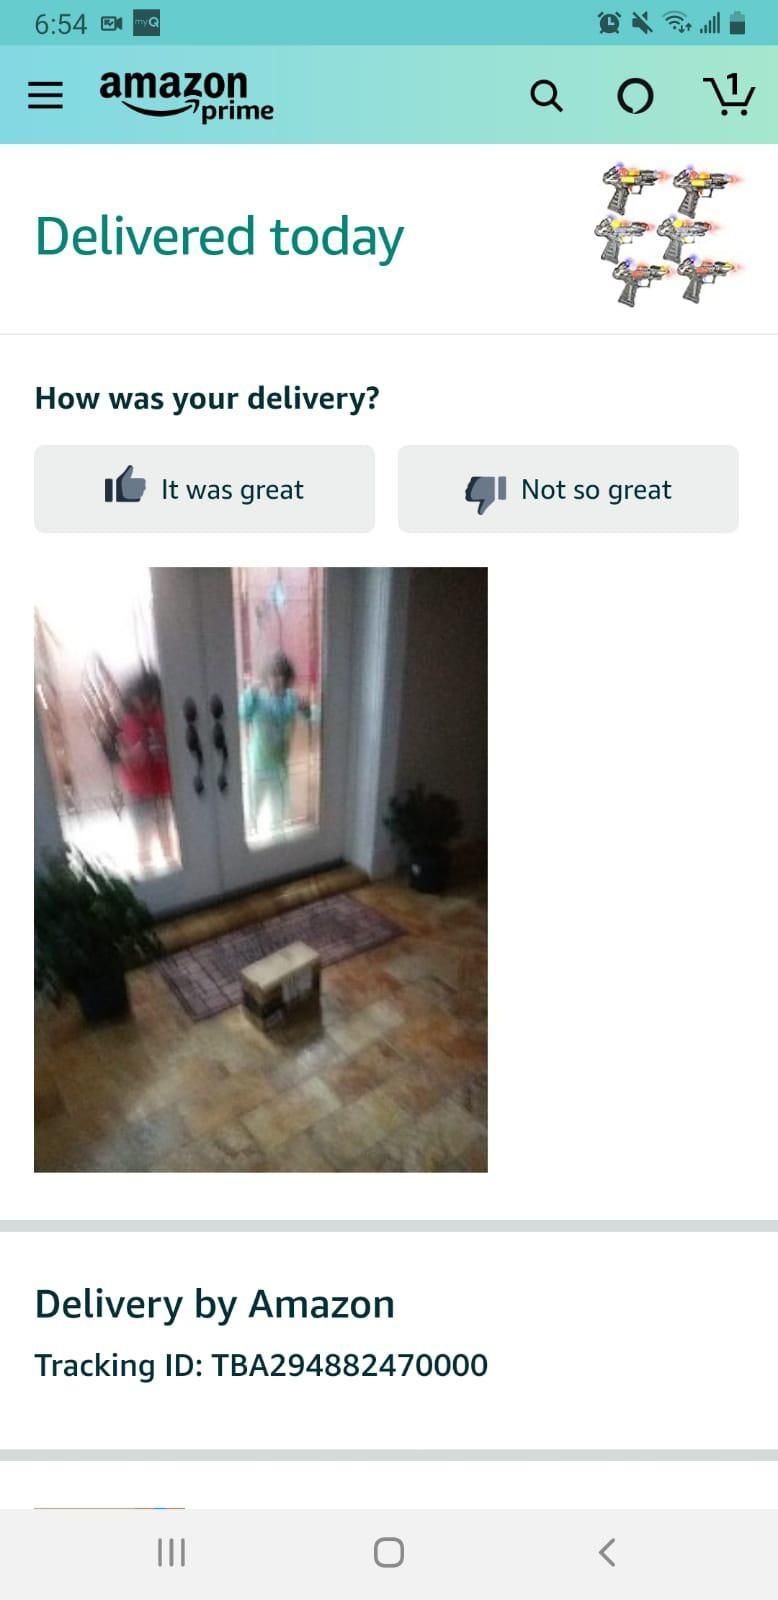 Amazon's delivery confirmation. My niece and nephew were waiting for their toy.